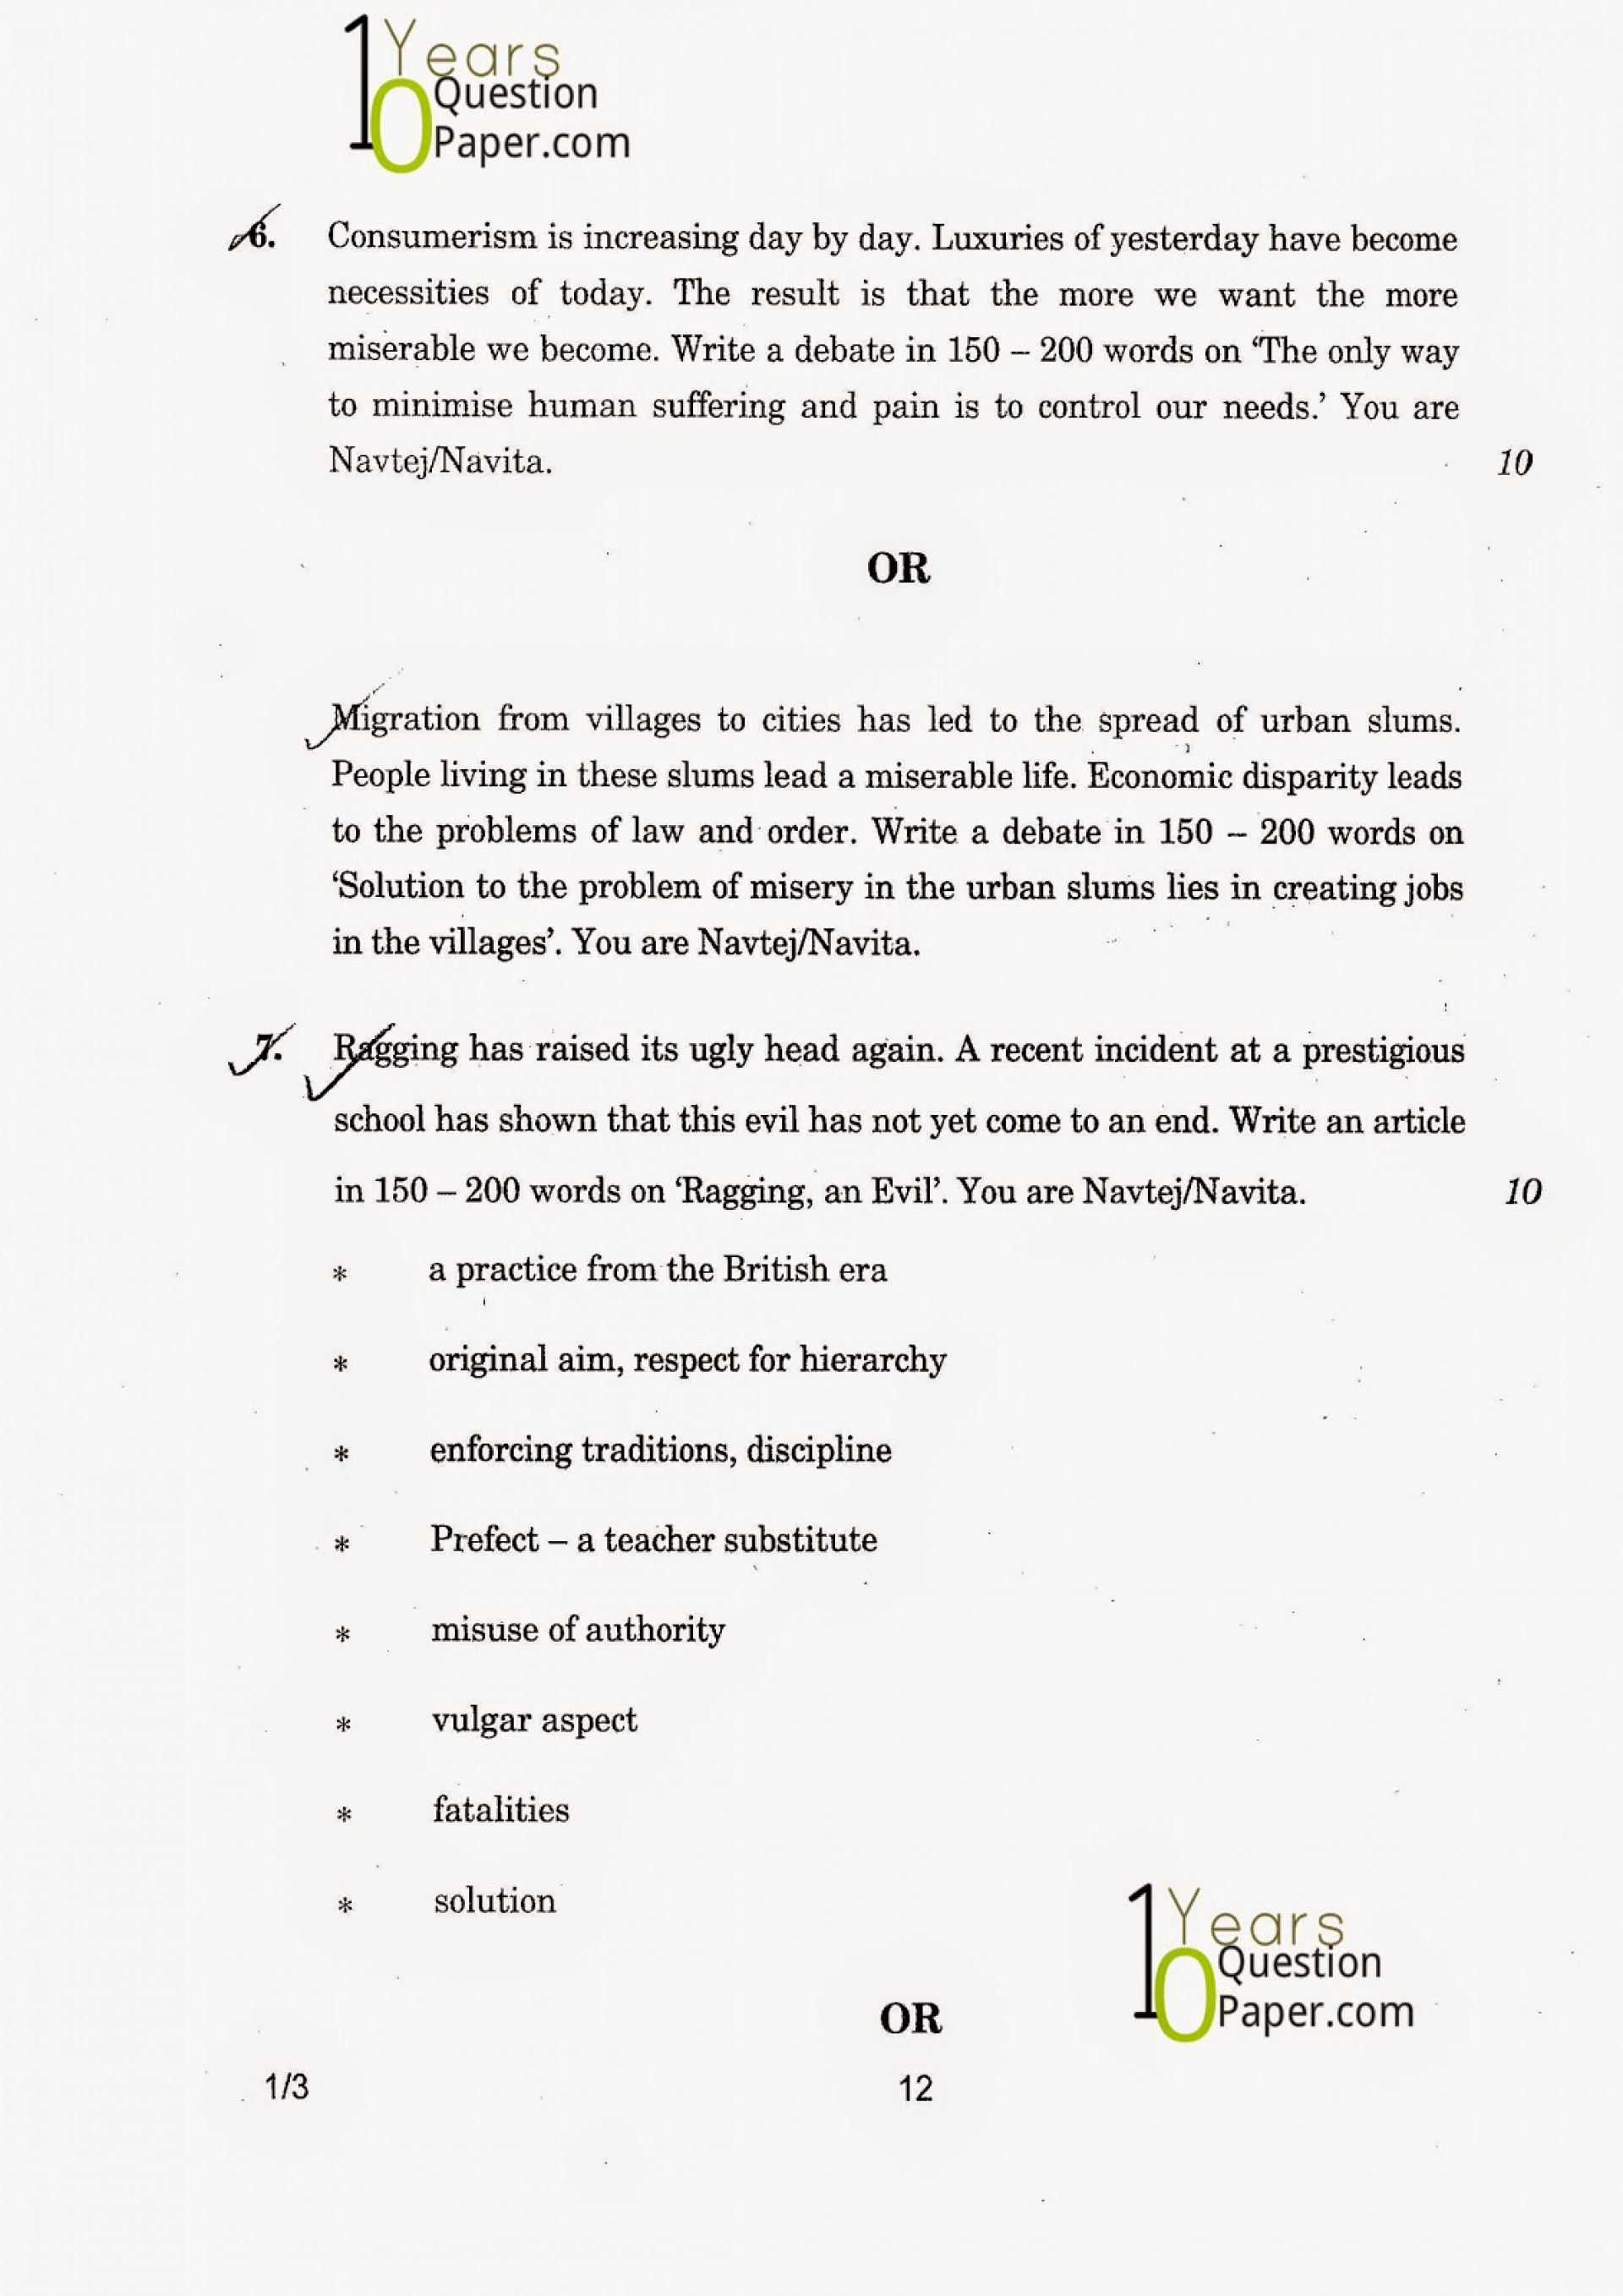 007 Research Paper Cbse English Set Jpg For Writing Papers Adrian Wallwork Marvelous Pdf 2011 1920